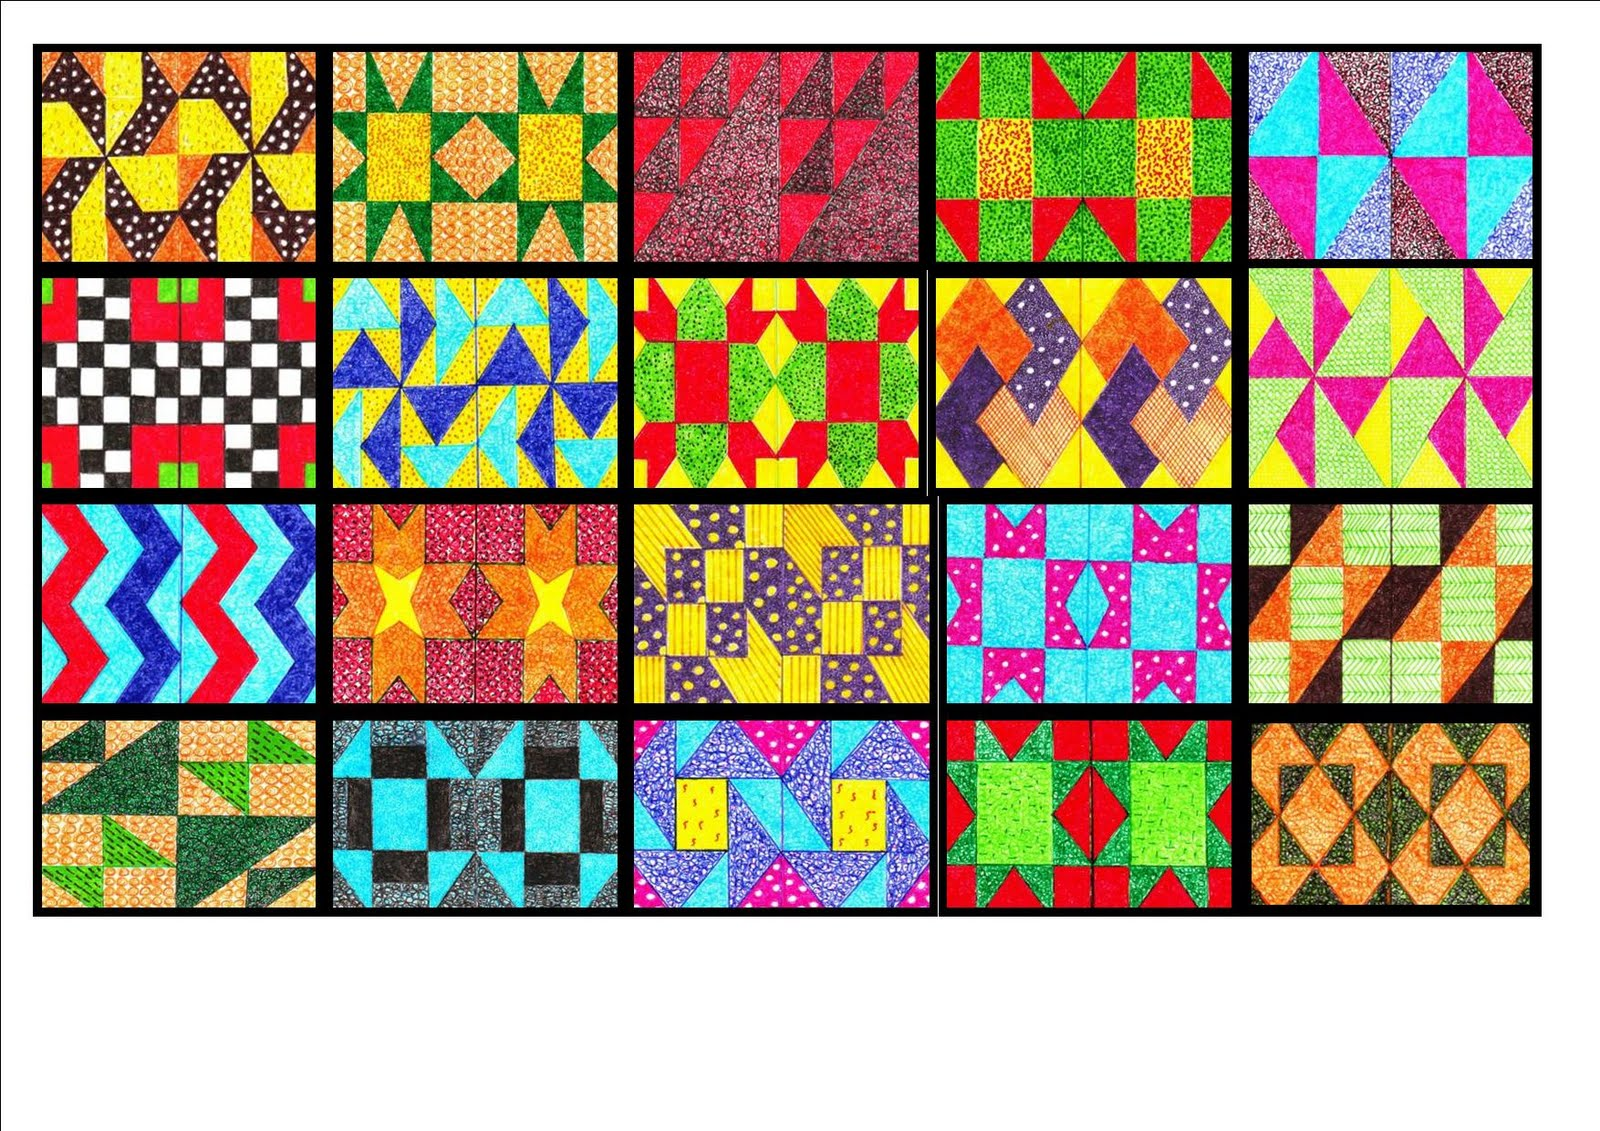 Patchwork Quilt Block Patterns Free : PATCHWORK BLOCK PATTERNS - FREE PATTERNS